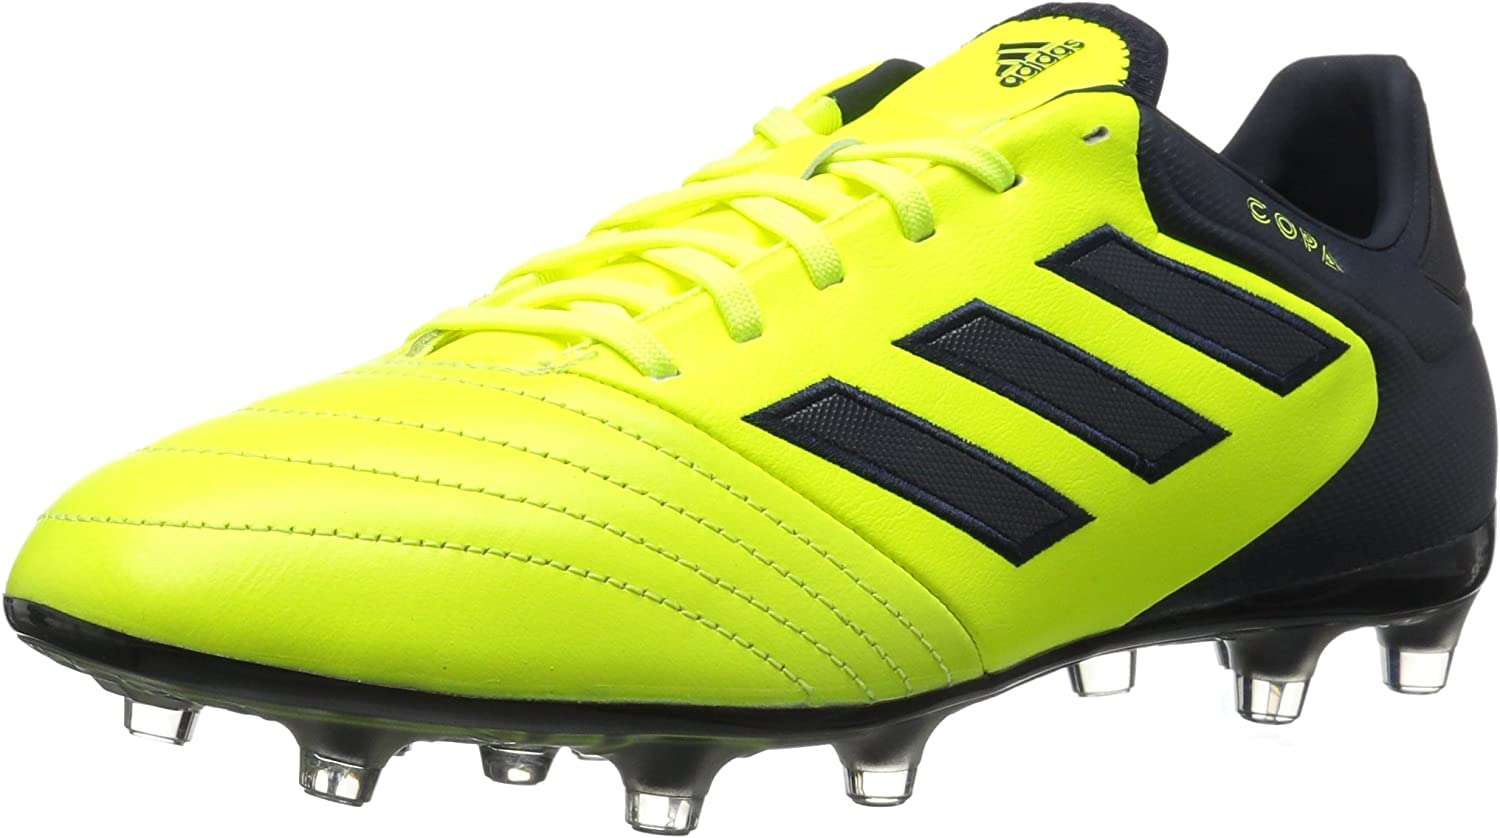 Adidas Men's Copa 17.2 Firm Ground Cleats Soccer sautope, Solar gituttio Legend Ink, (11.5 M US)